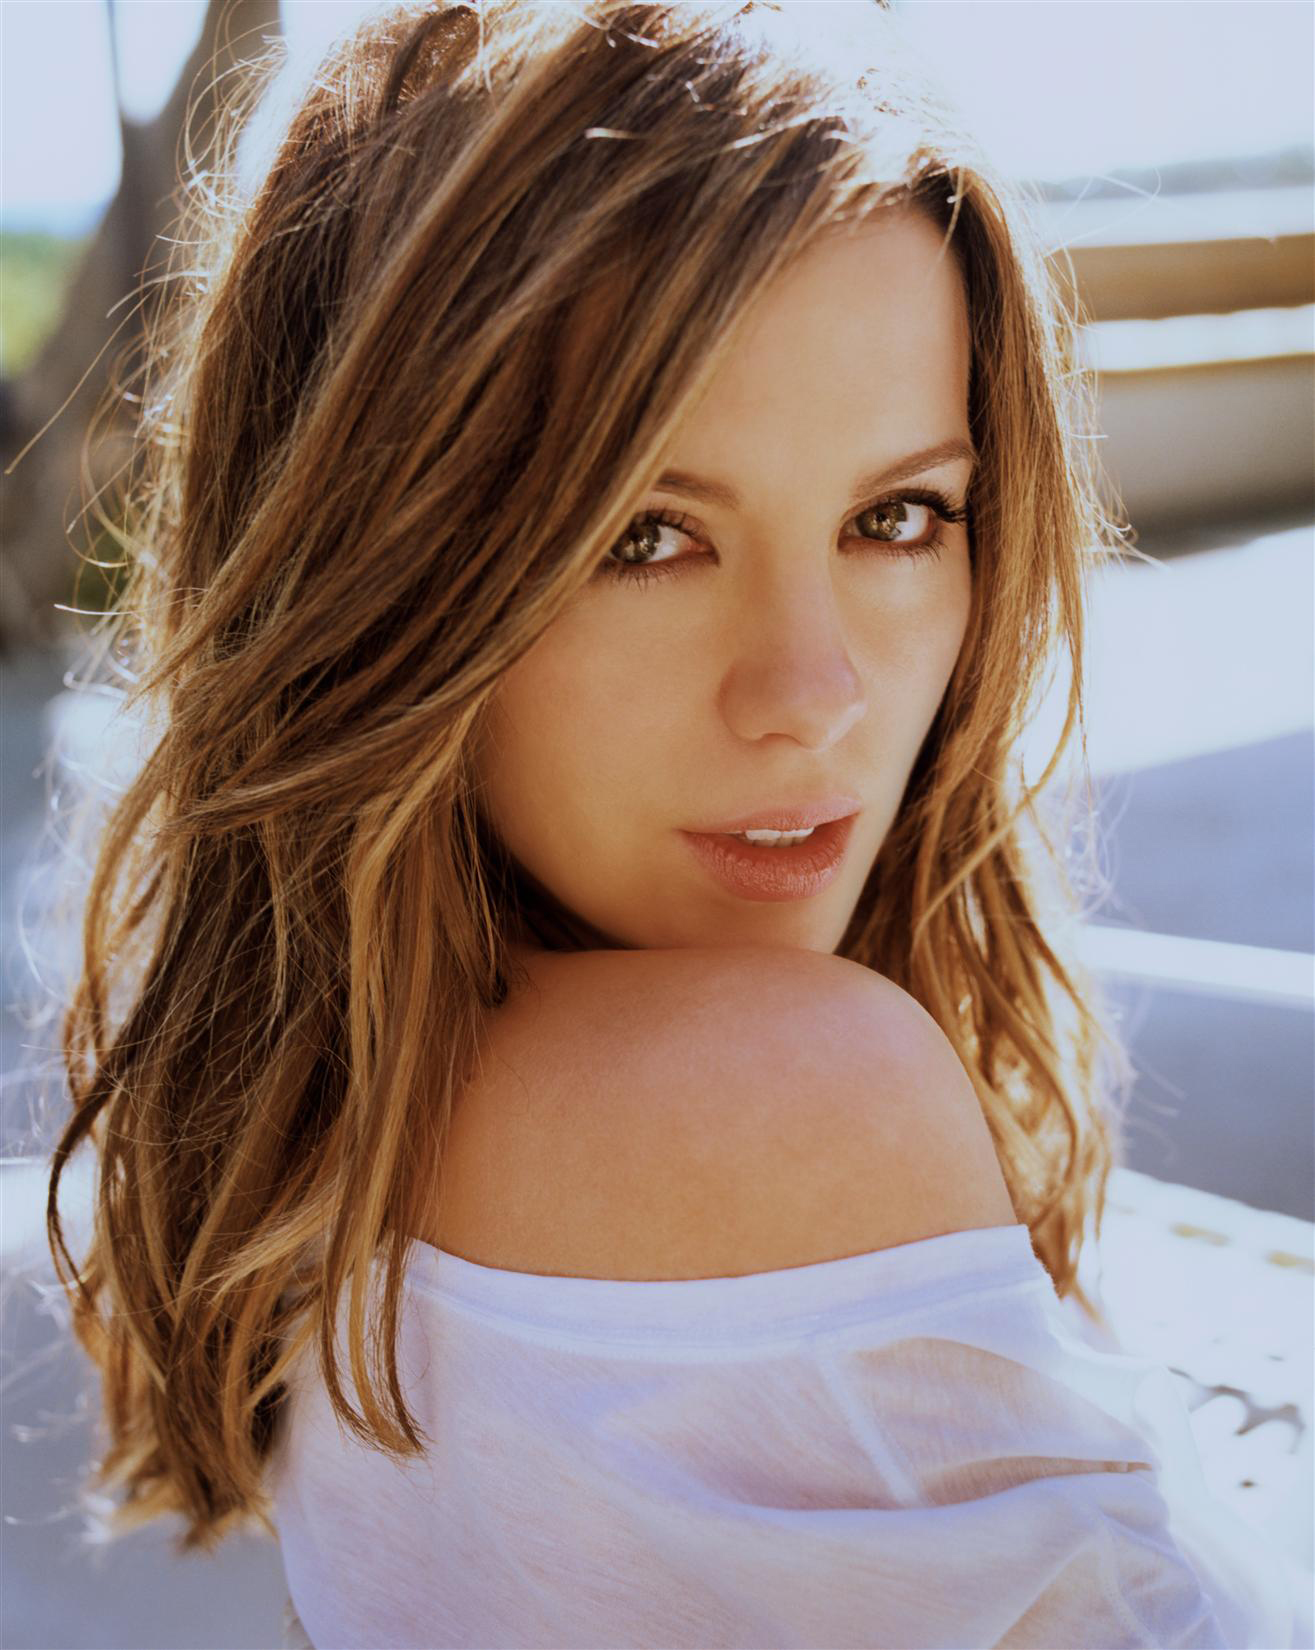 Kate Beckinsale images Kate Beckinsale HD wallpaper and background ...